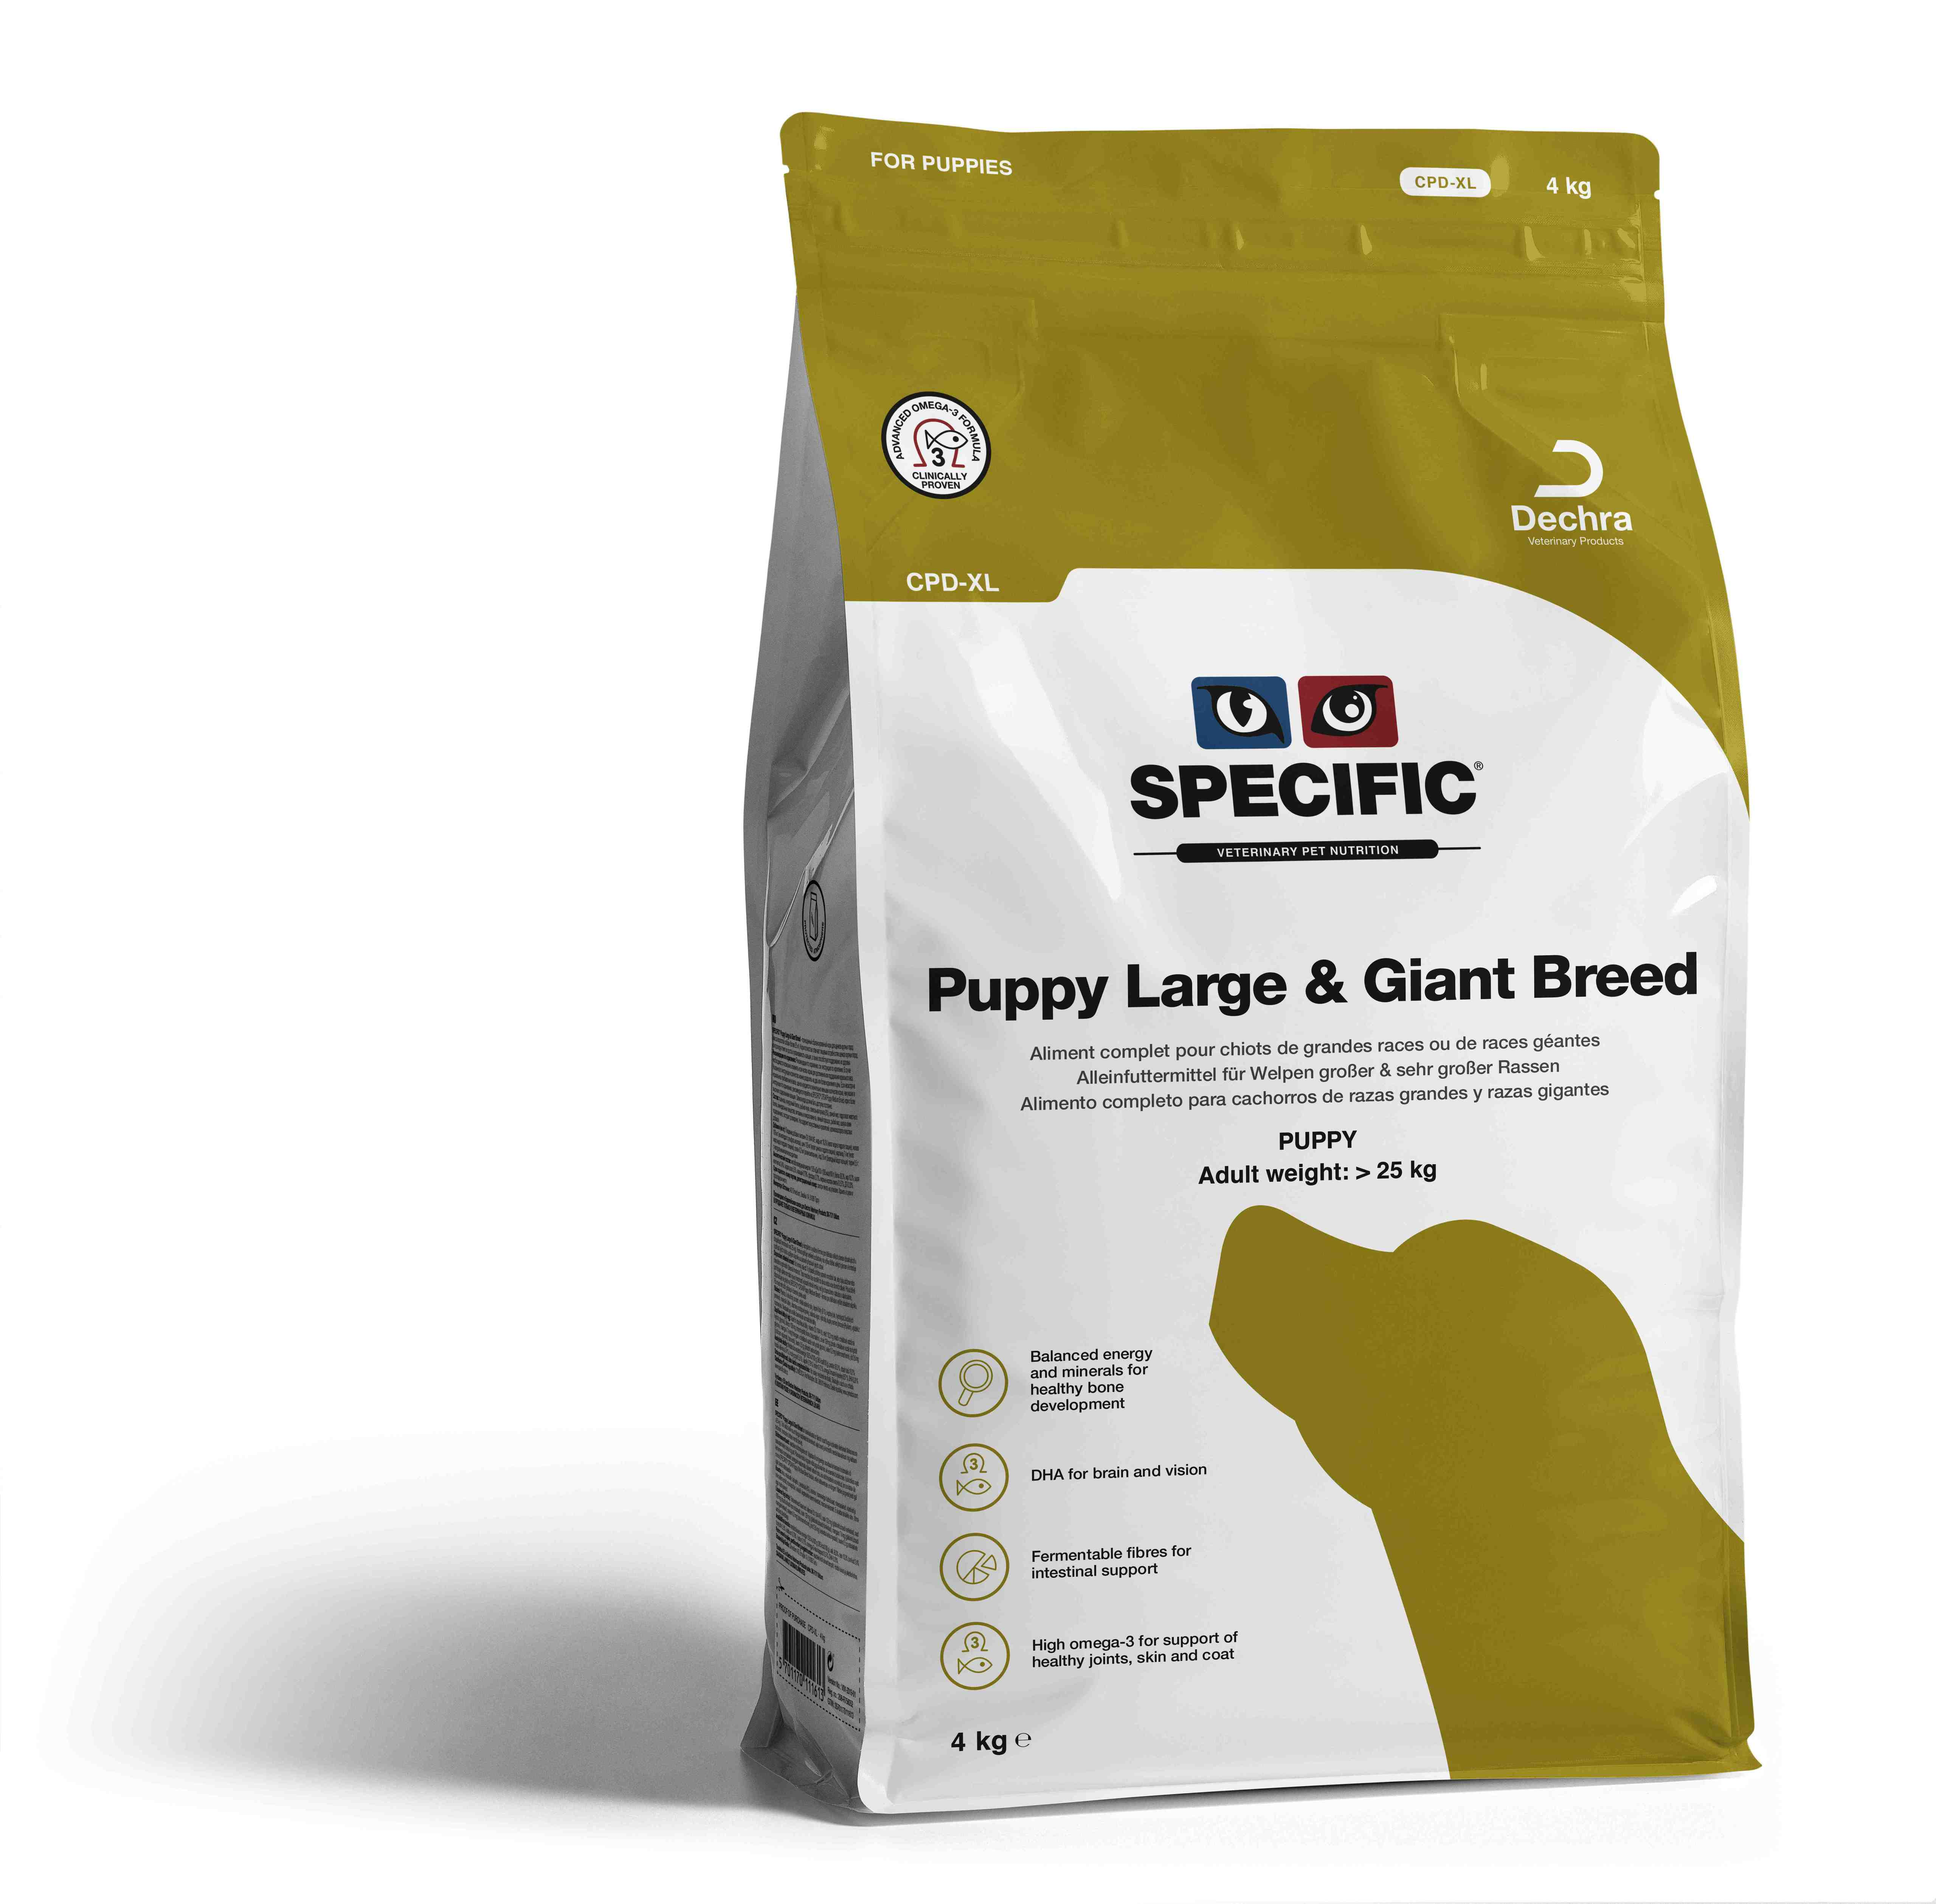 Puppy Large & Gigant Breed CPD-XL - 4 kg